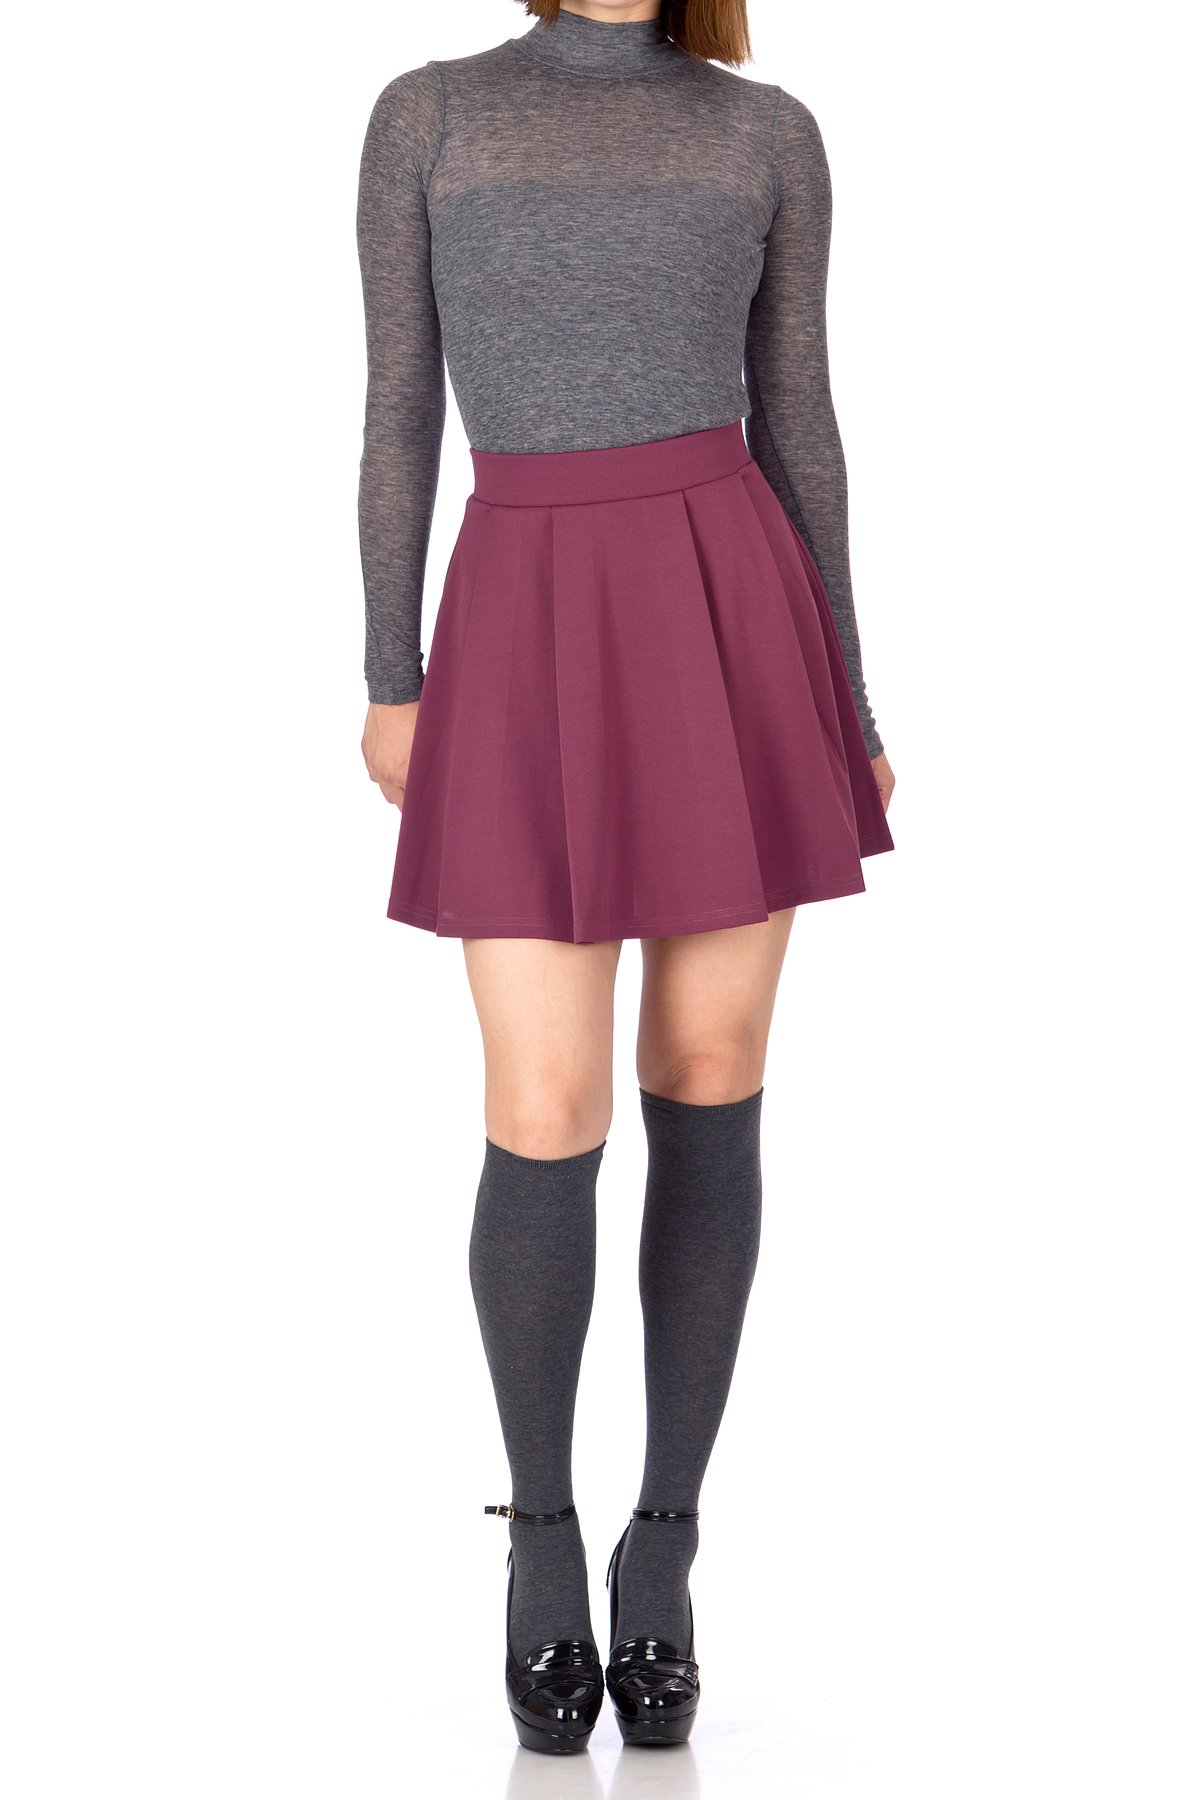 6c21a25fcb Girls Grey Pleated School Skirt